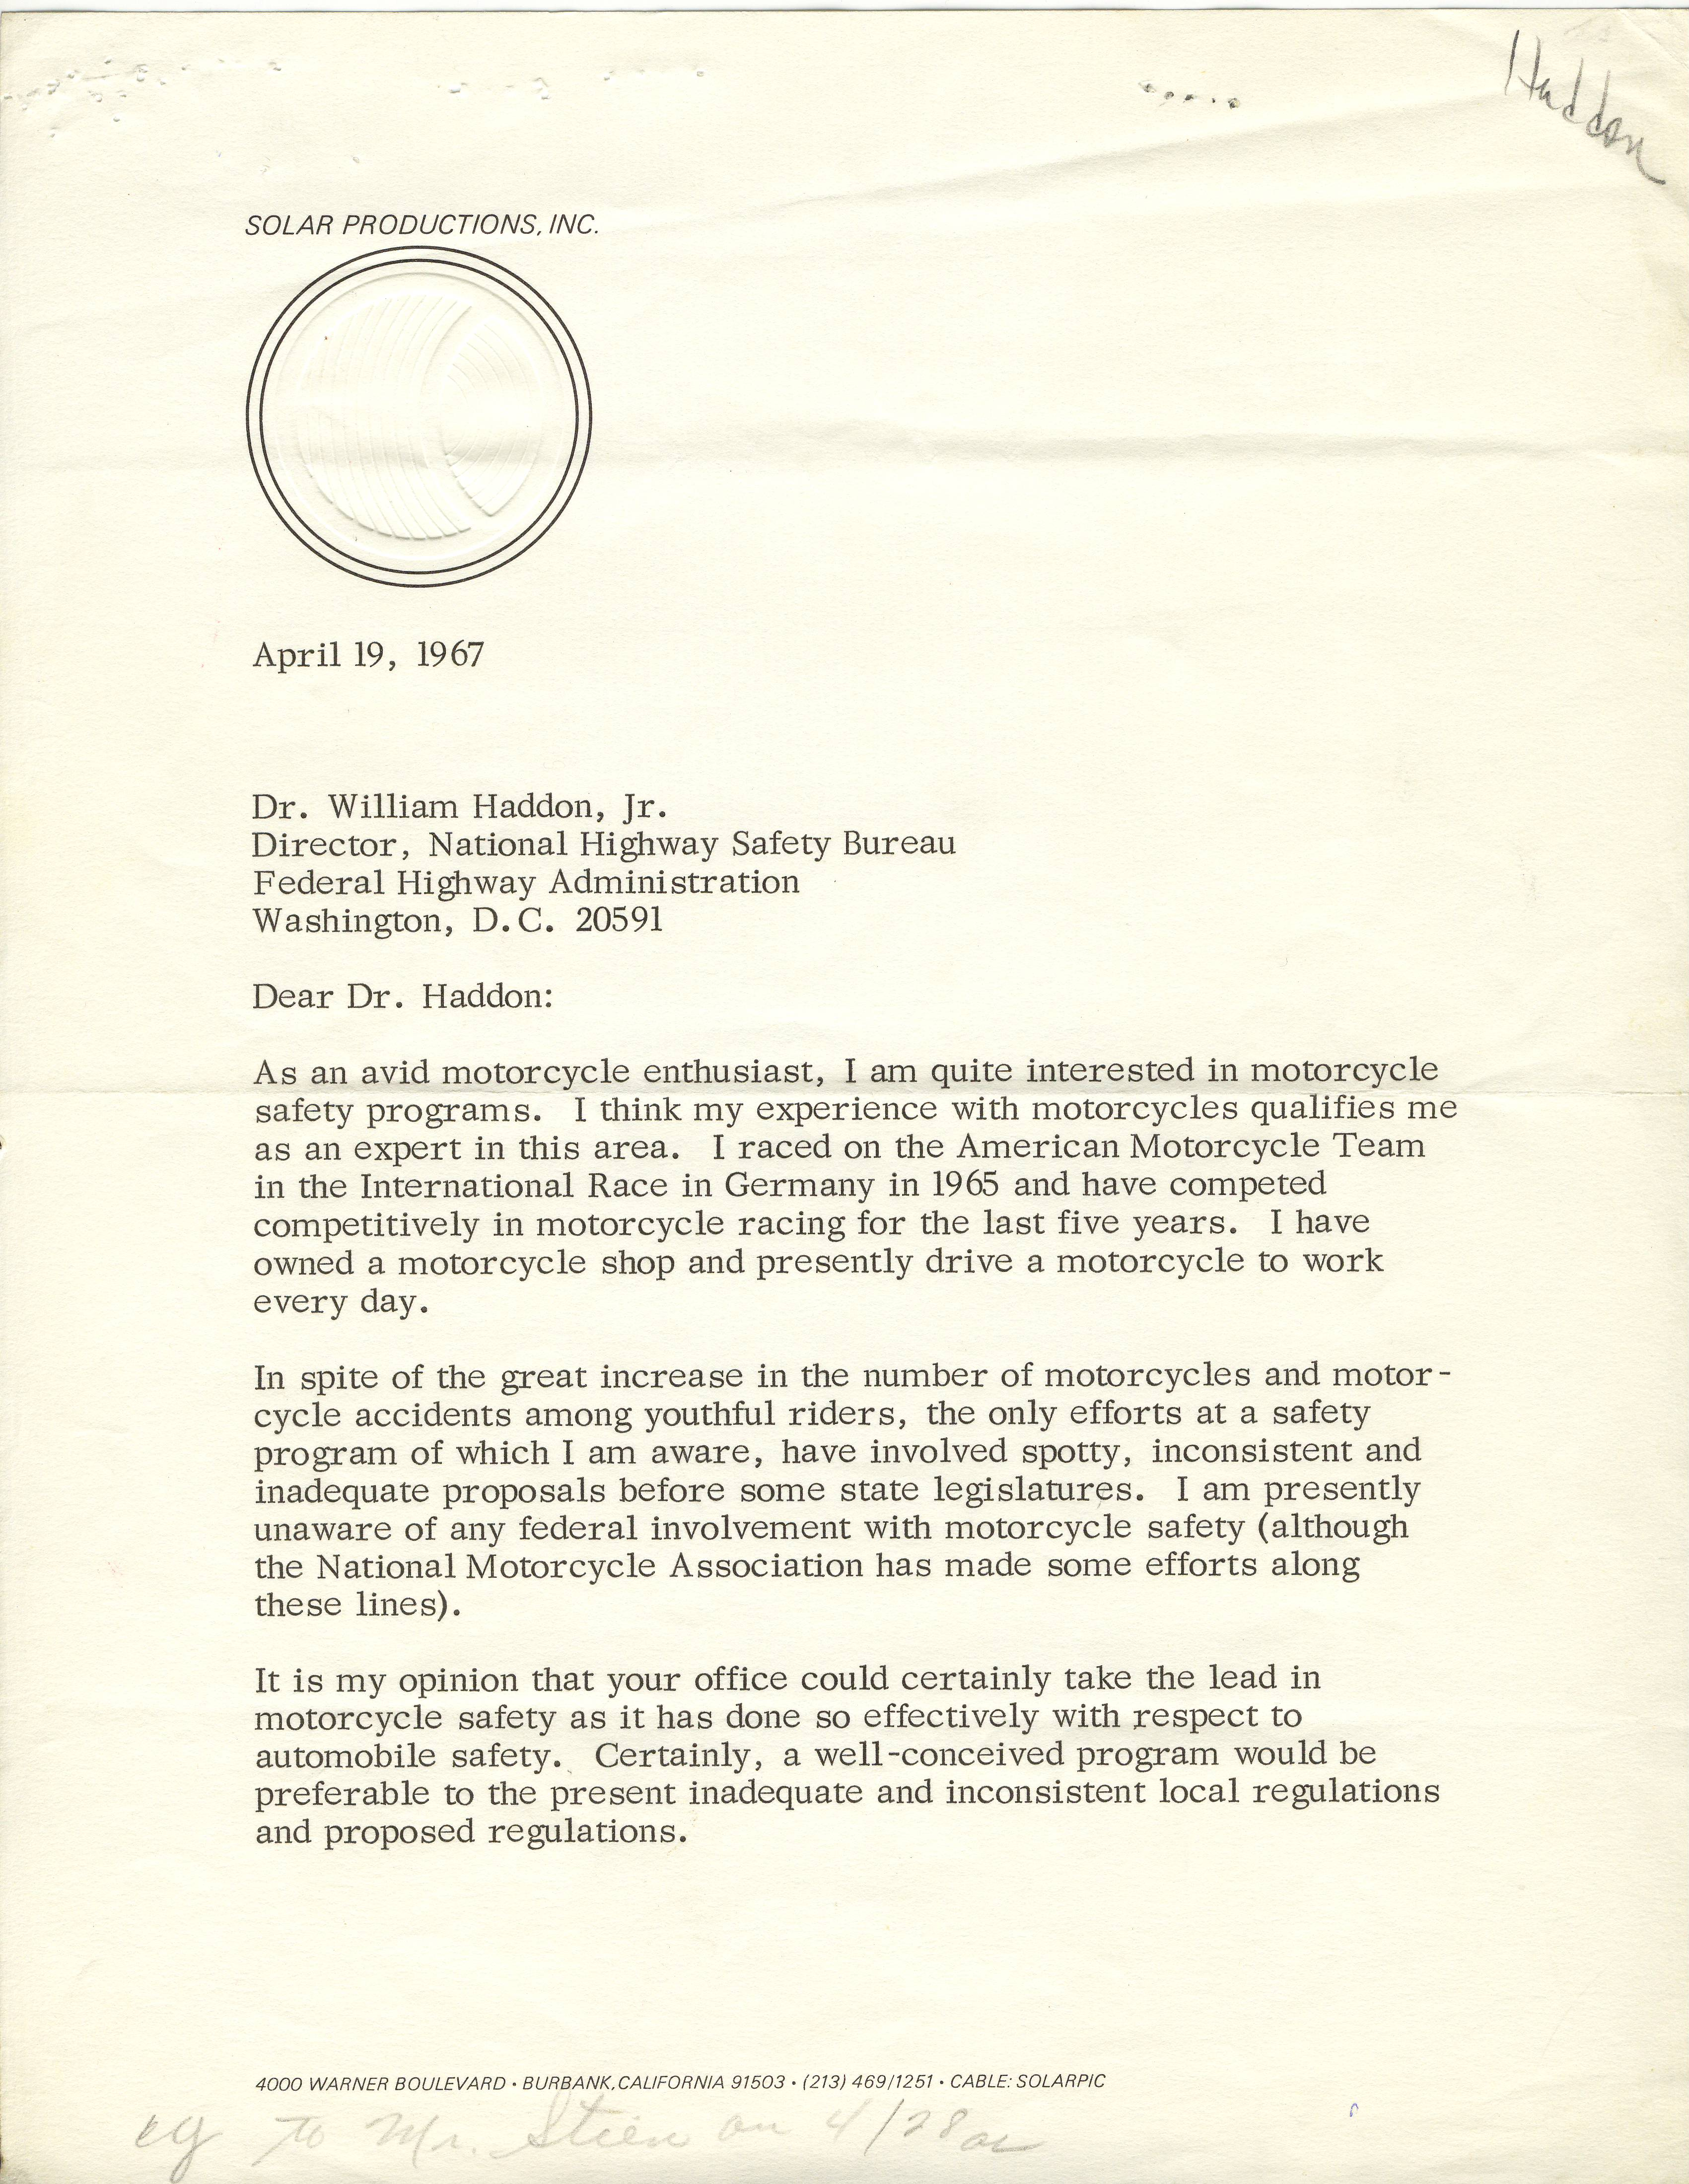 Letter from Steve McQueen to Dr. William Haddon, Jr., April 19, 1967.